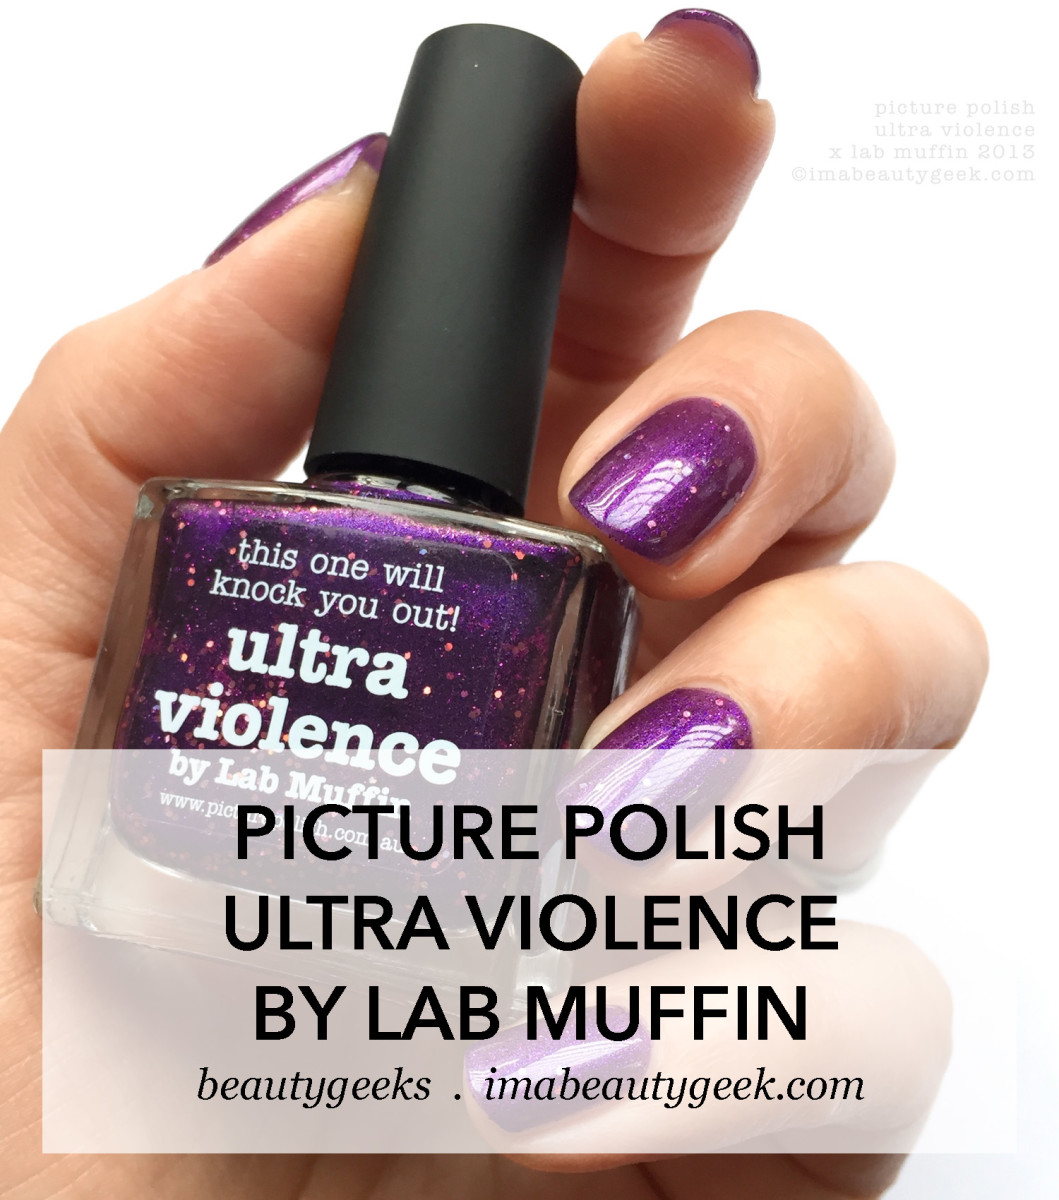 Picture Polish Ultra Violence by Lab Muffin 2013 Collab